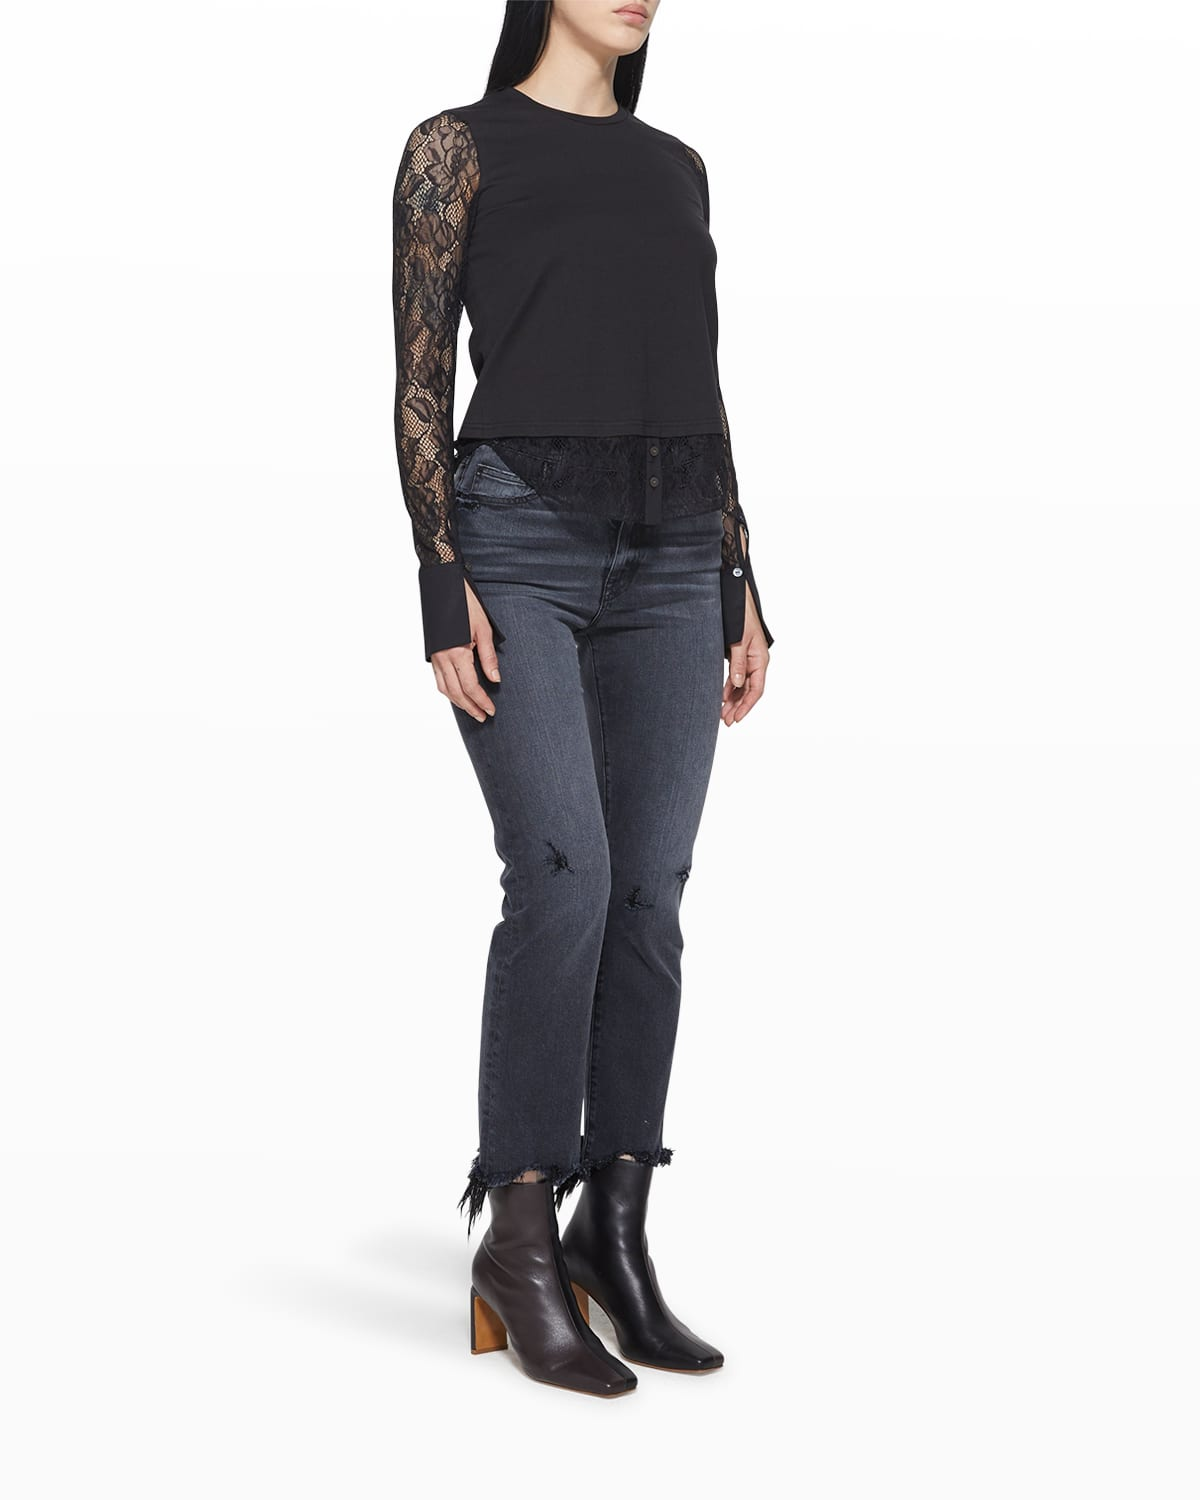 Torrin Recycled Lace Combo Shirt